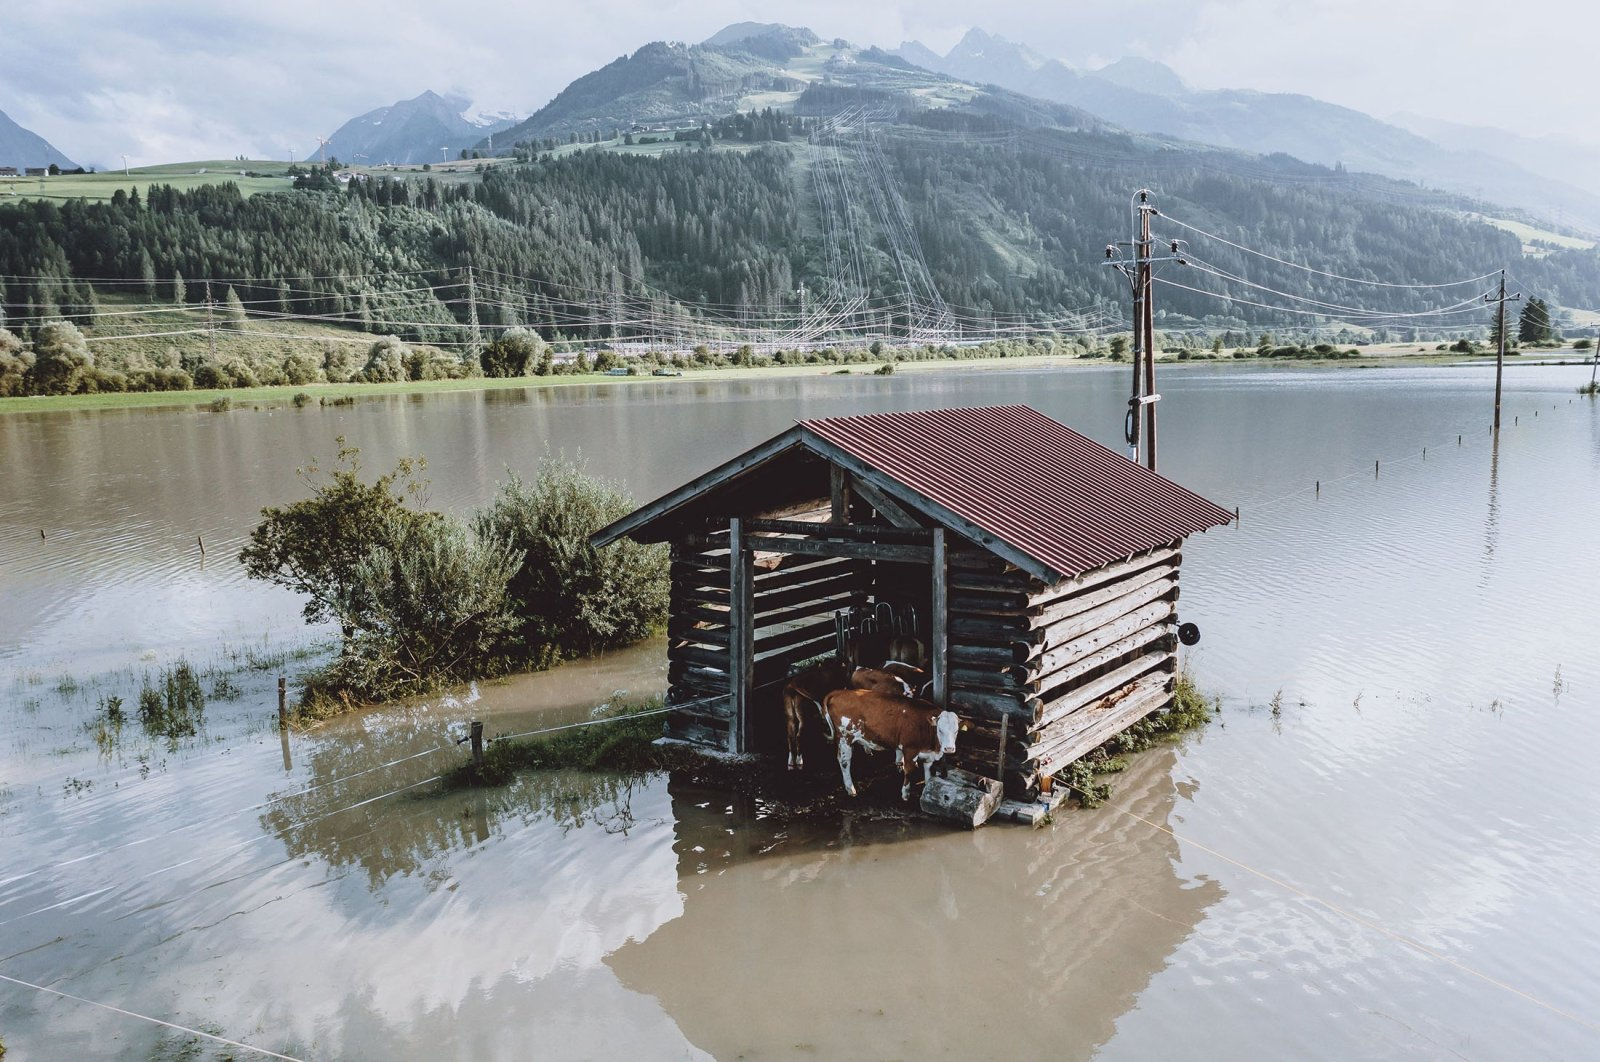 Cows stand in a shed at an overflooded meadow in Kaprun, Austria, July 19, 2021. (AFP Photo)